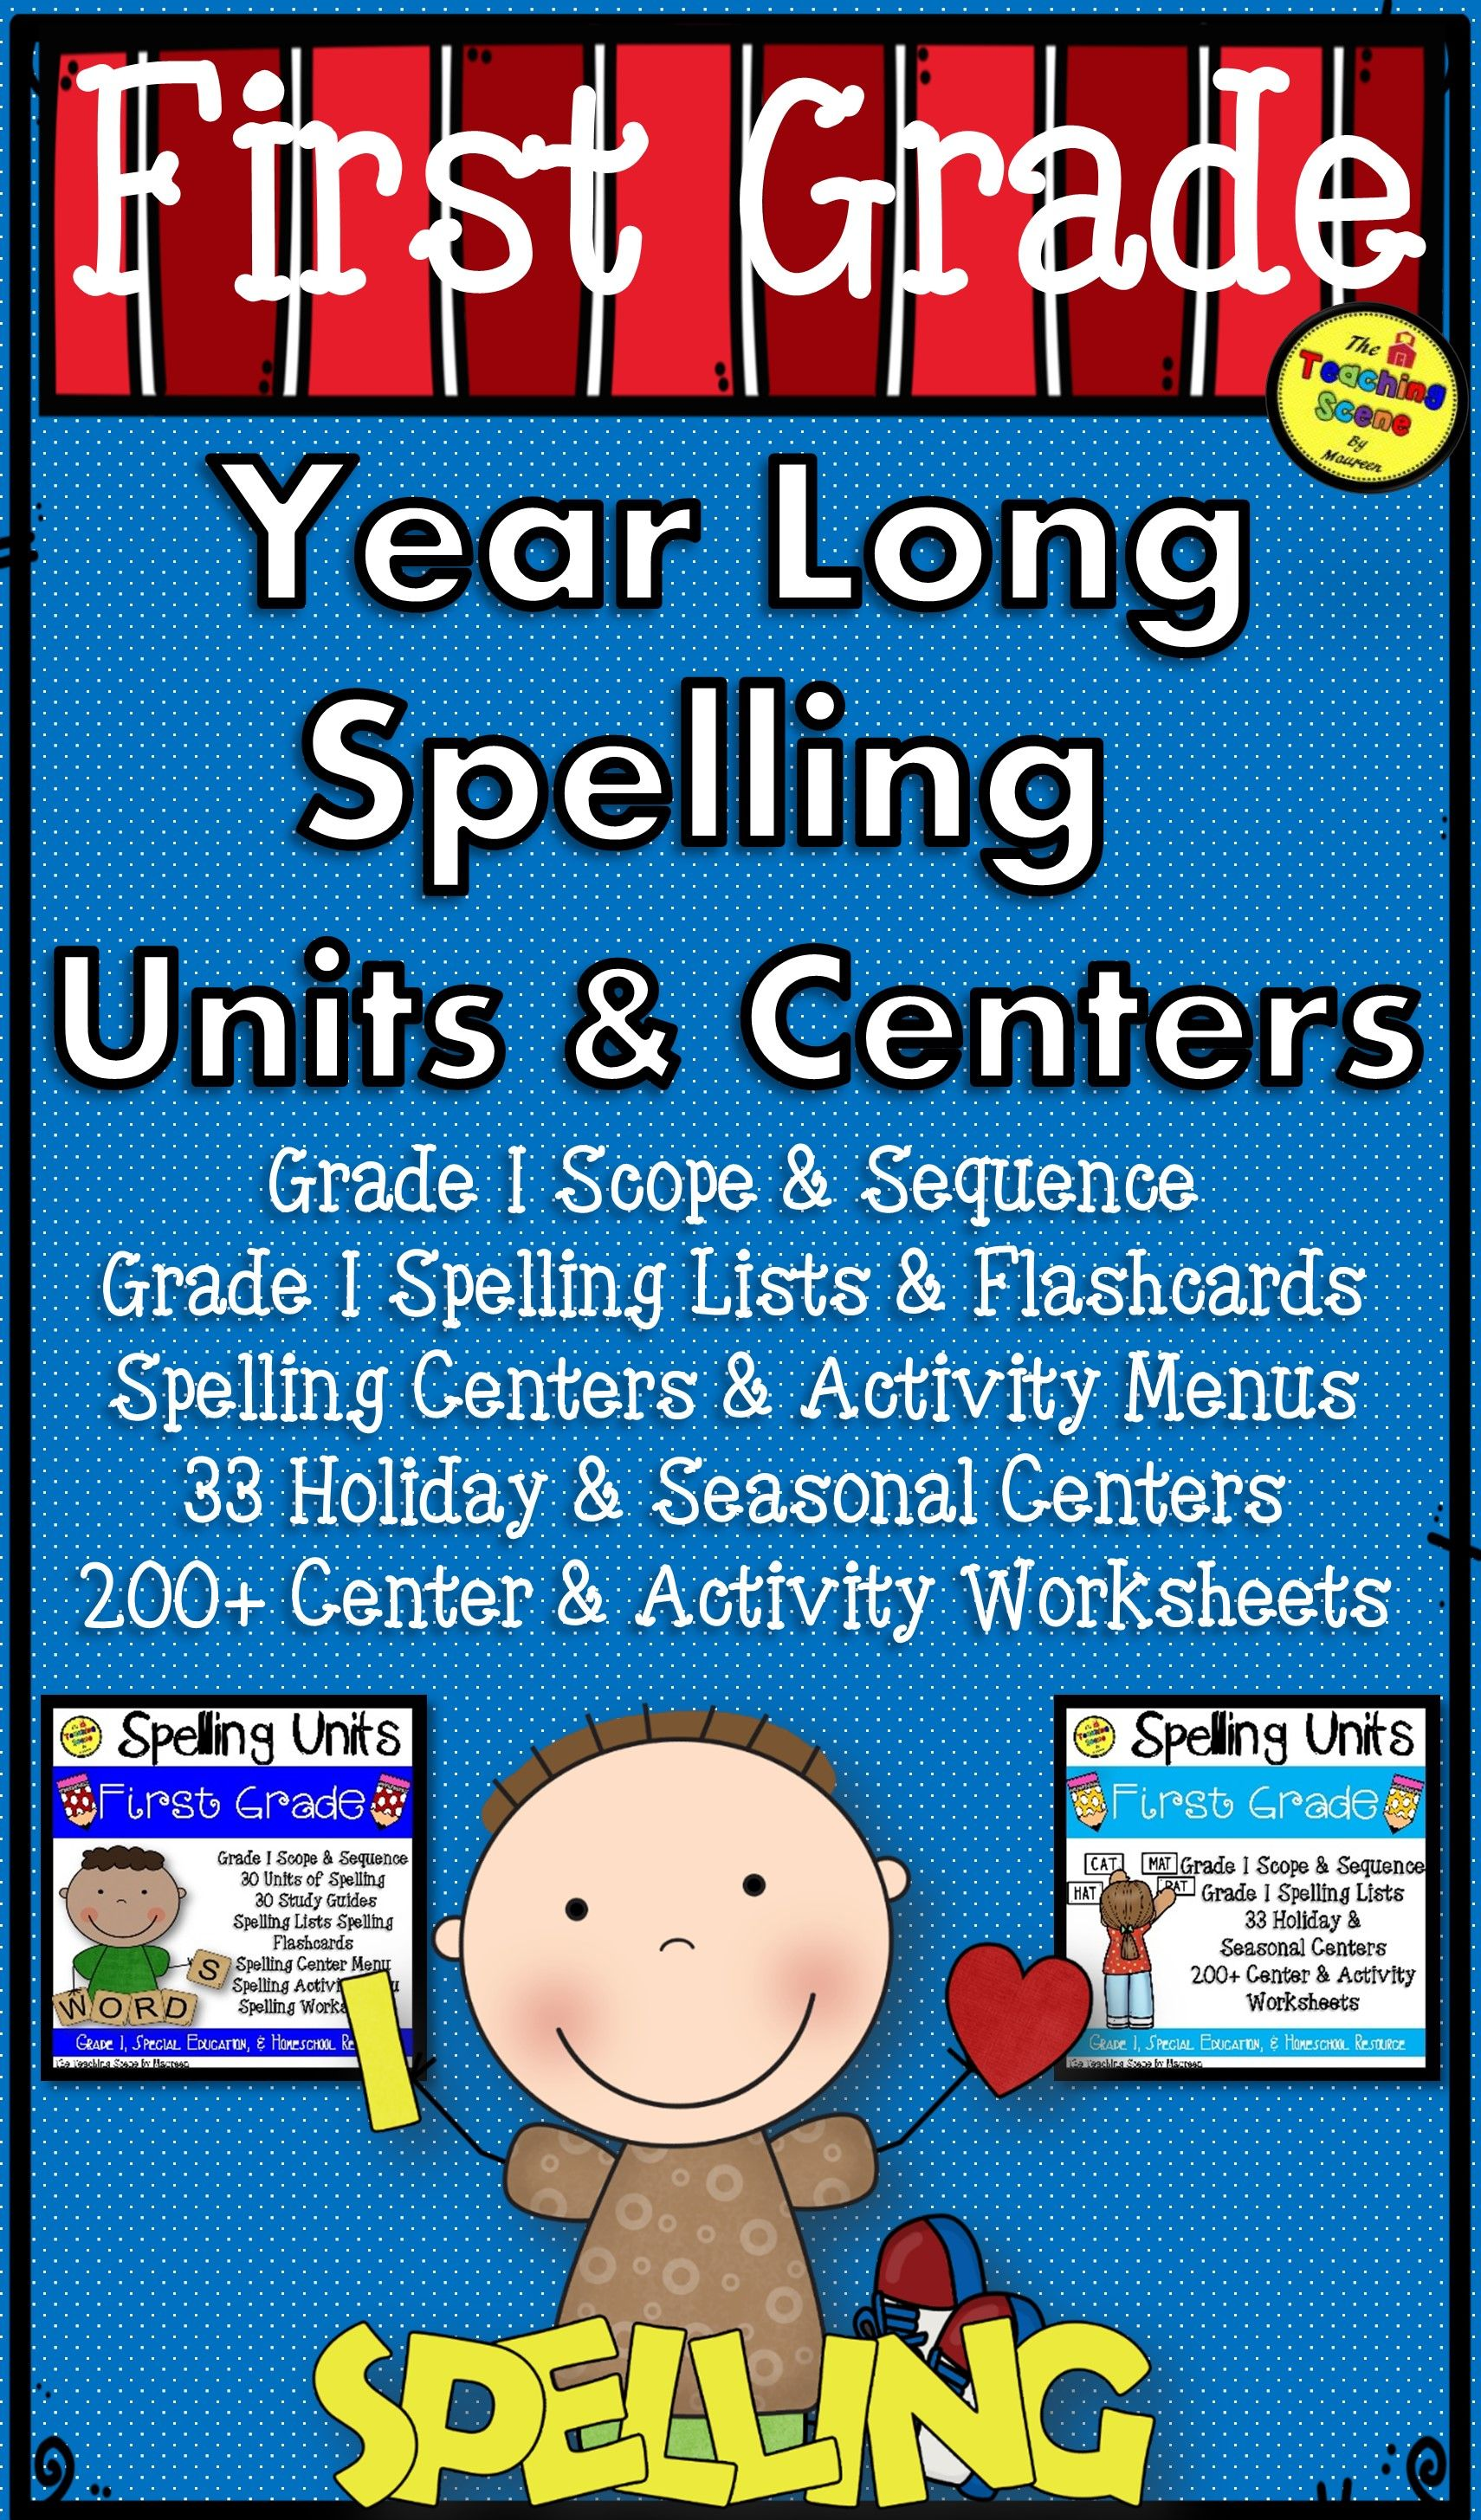 First Grade Year Long Spelling Curriculum Units Amp Centers